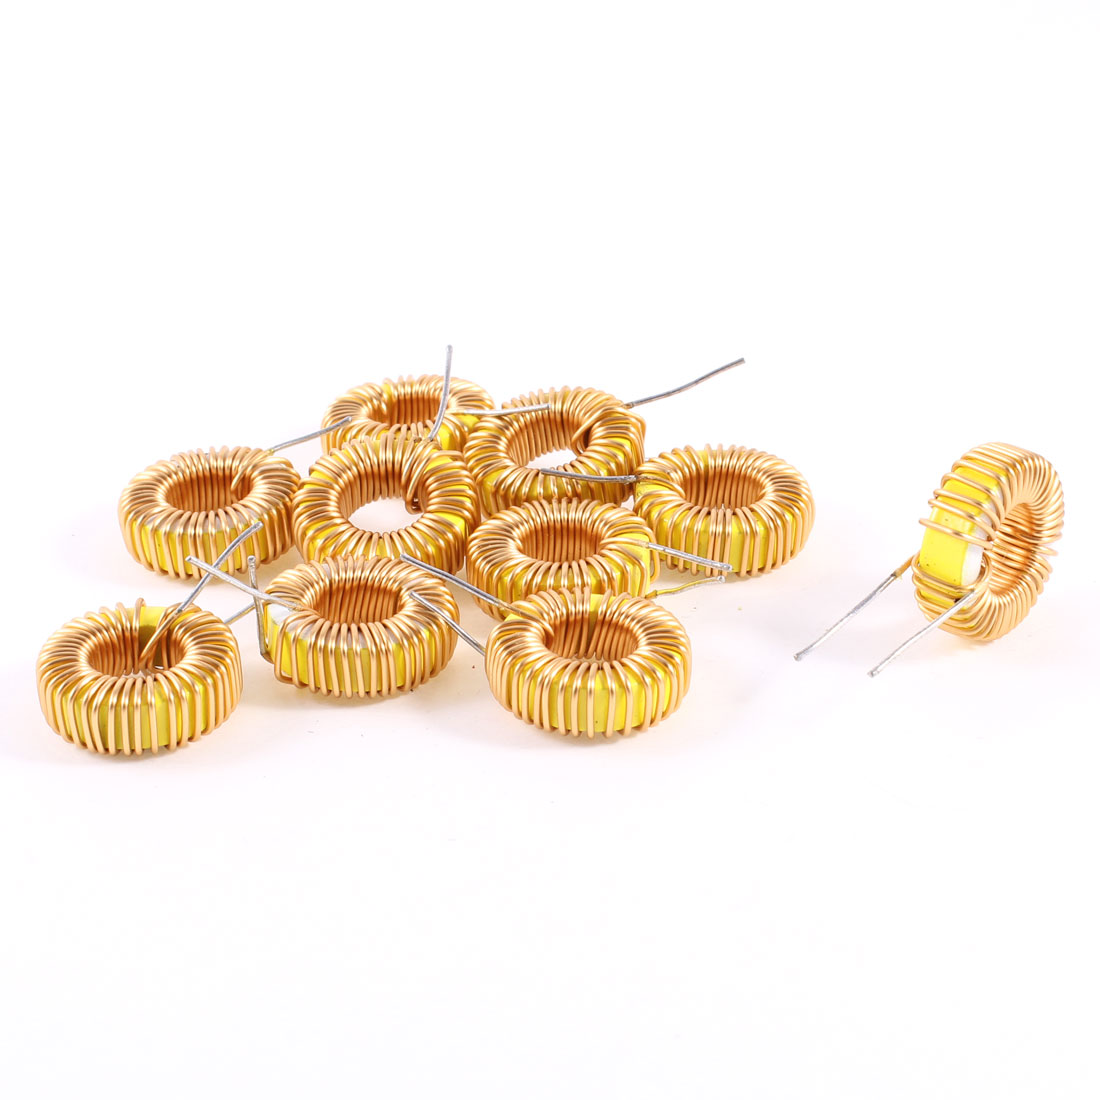 10 Pcs Toroid Core Inductor Wire Wind Wound 68uH 39mOhm 3A Coil